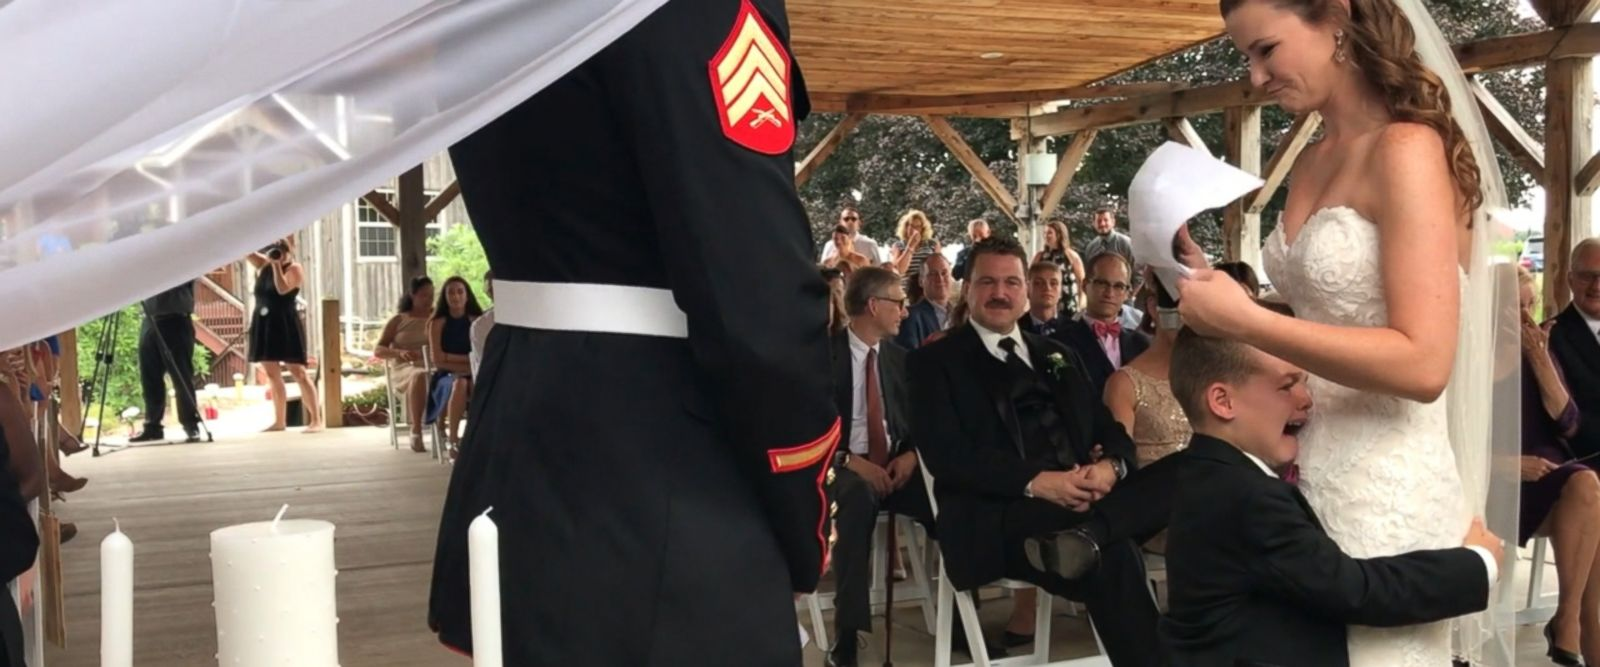 Senior Airman Emily Leehan recited heartfelt vows to her stepson Gage at her wedding, evoking tears and a close hug from the boy as they shared the emotional moment.